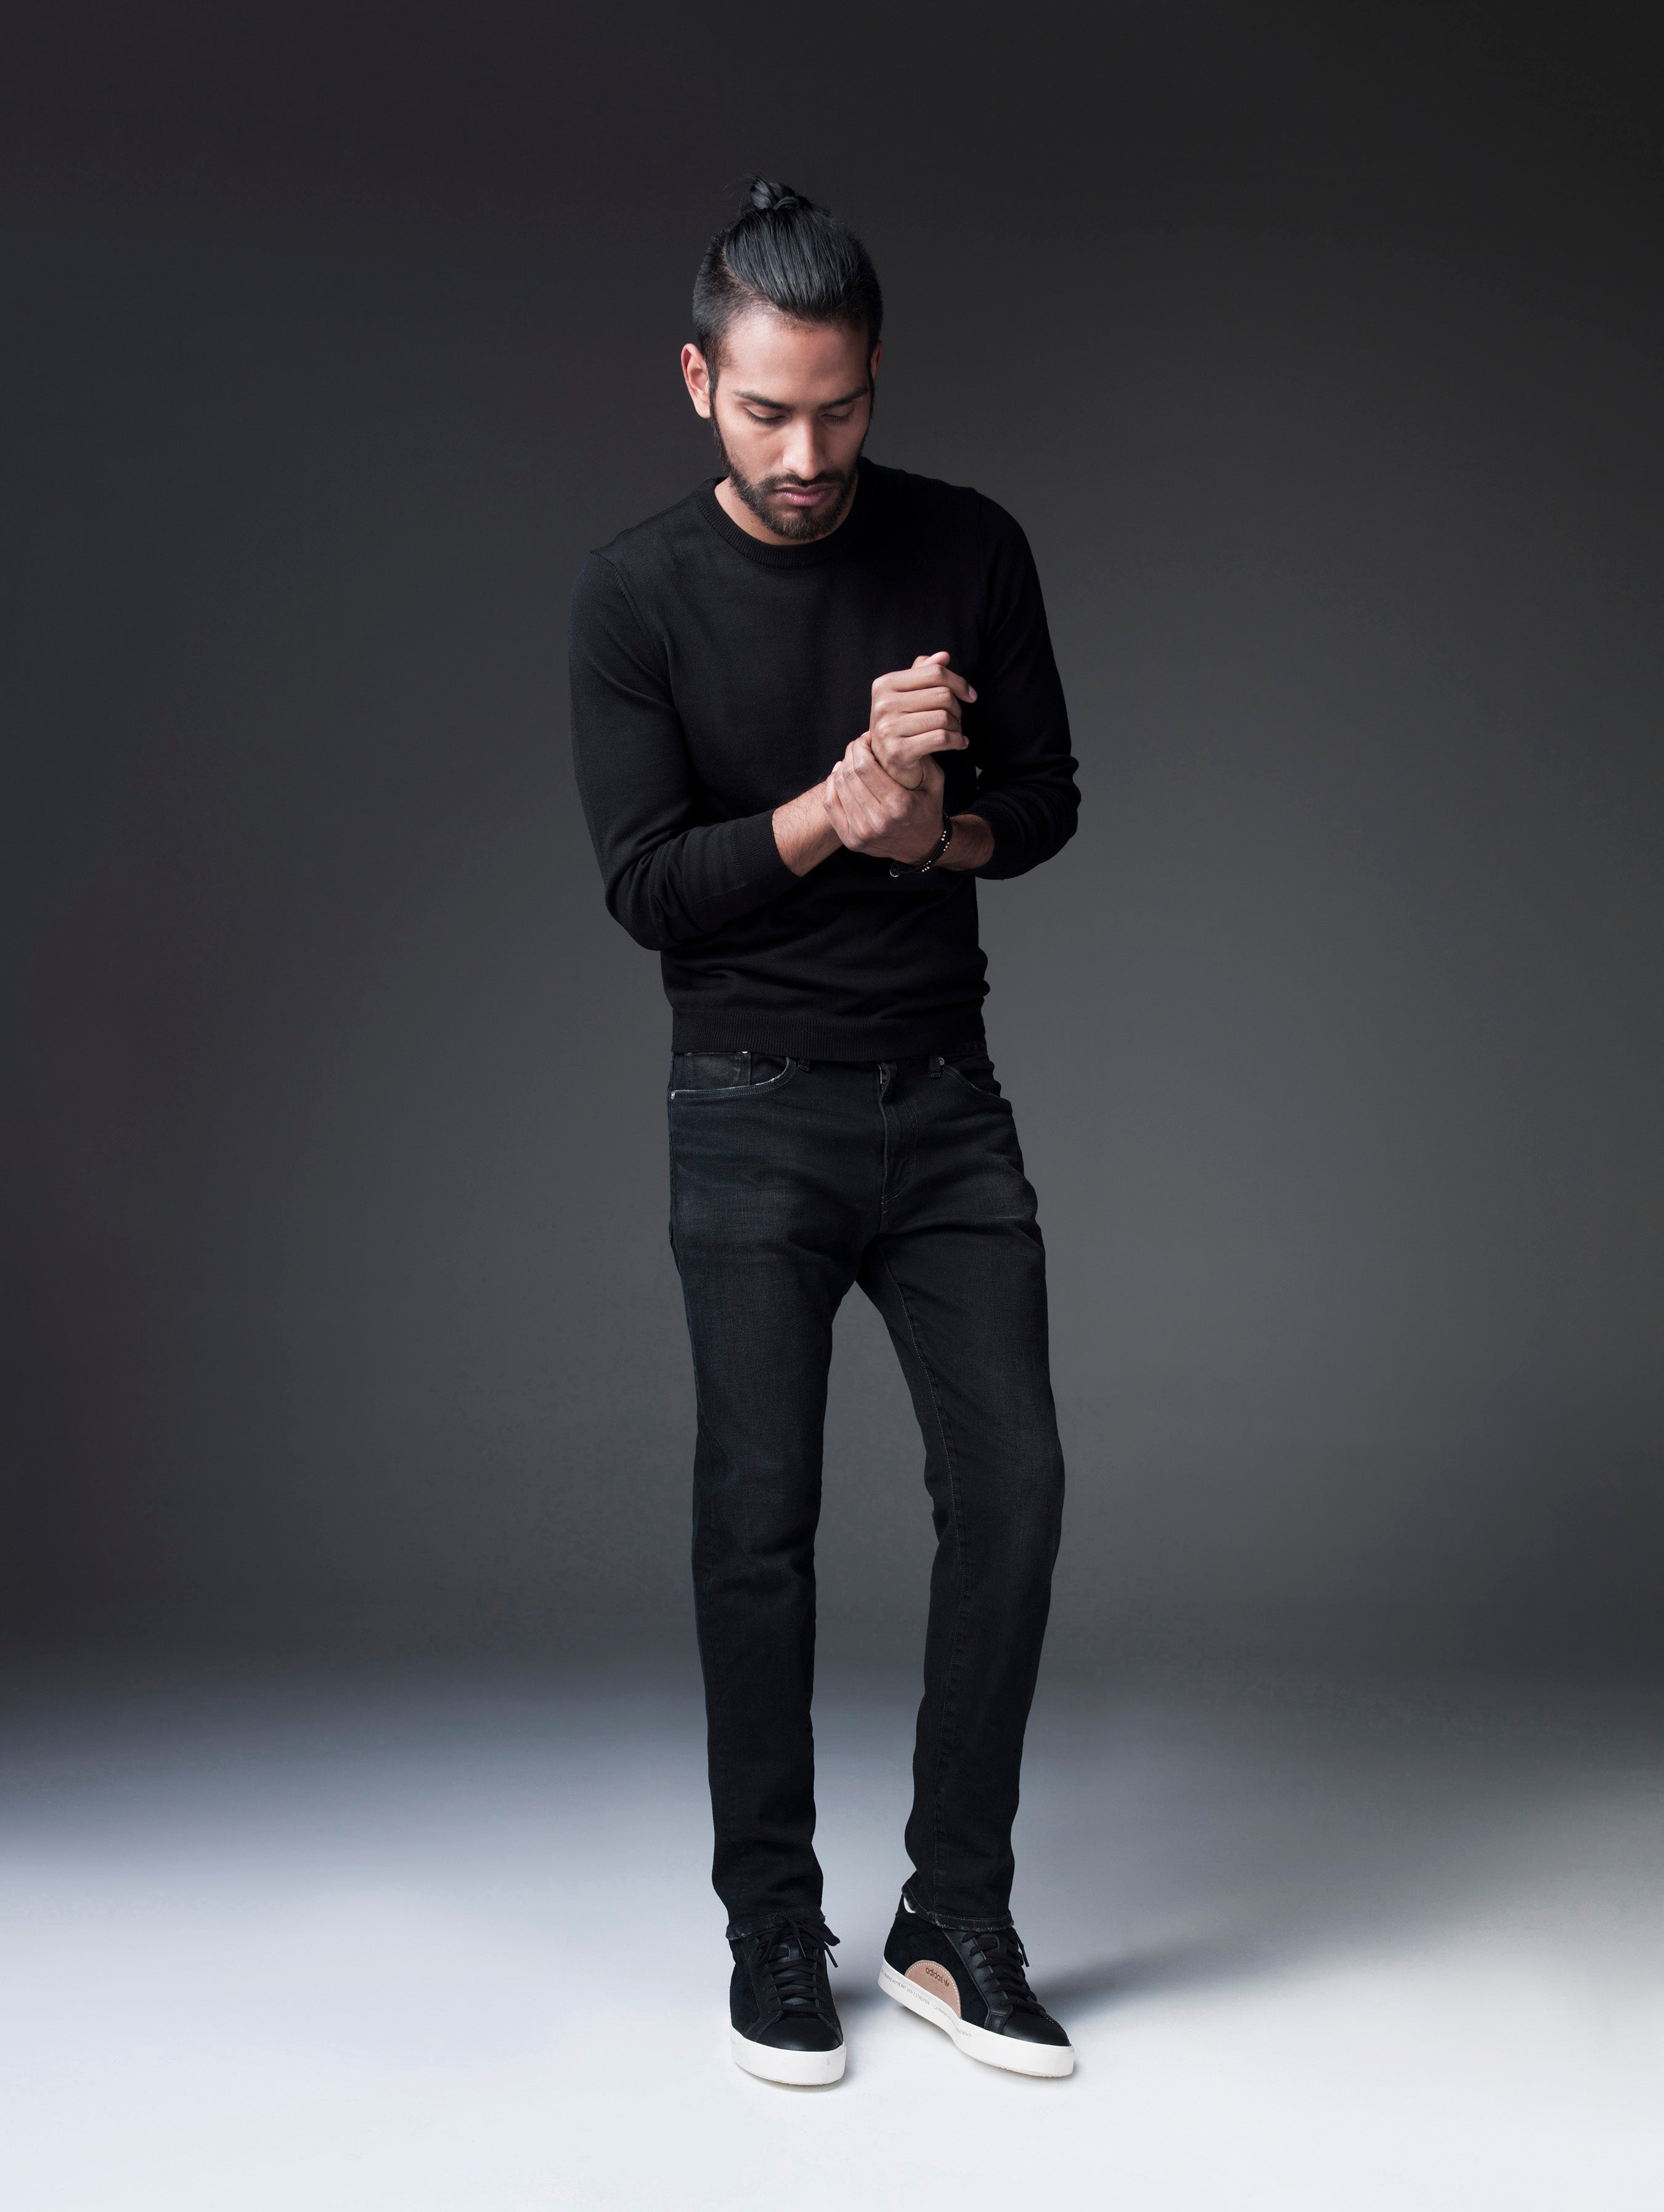 Ponytailed model dressed in all black with a black sweatshirt, S.M.N Studio's Finn in Black Rock, and black tennis shoes. He's in front of a heavily shadowed background grabbing his right wrist with his left hand.